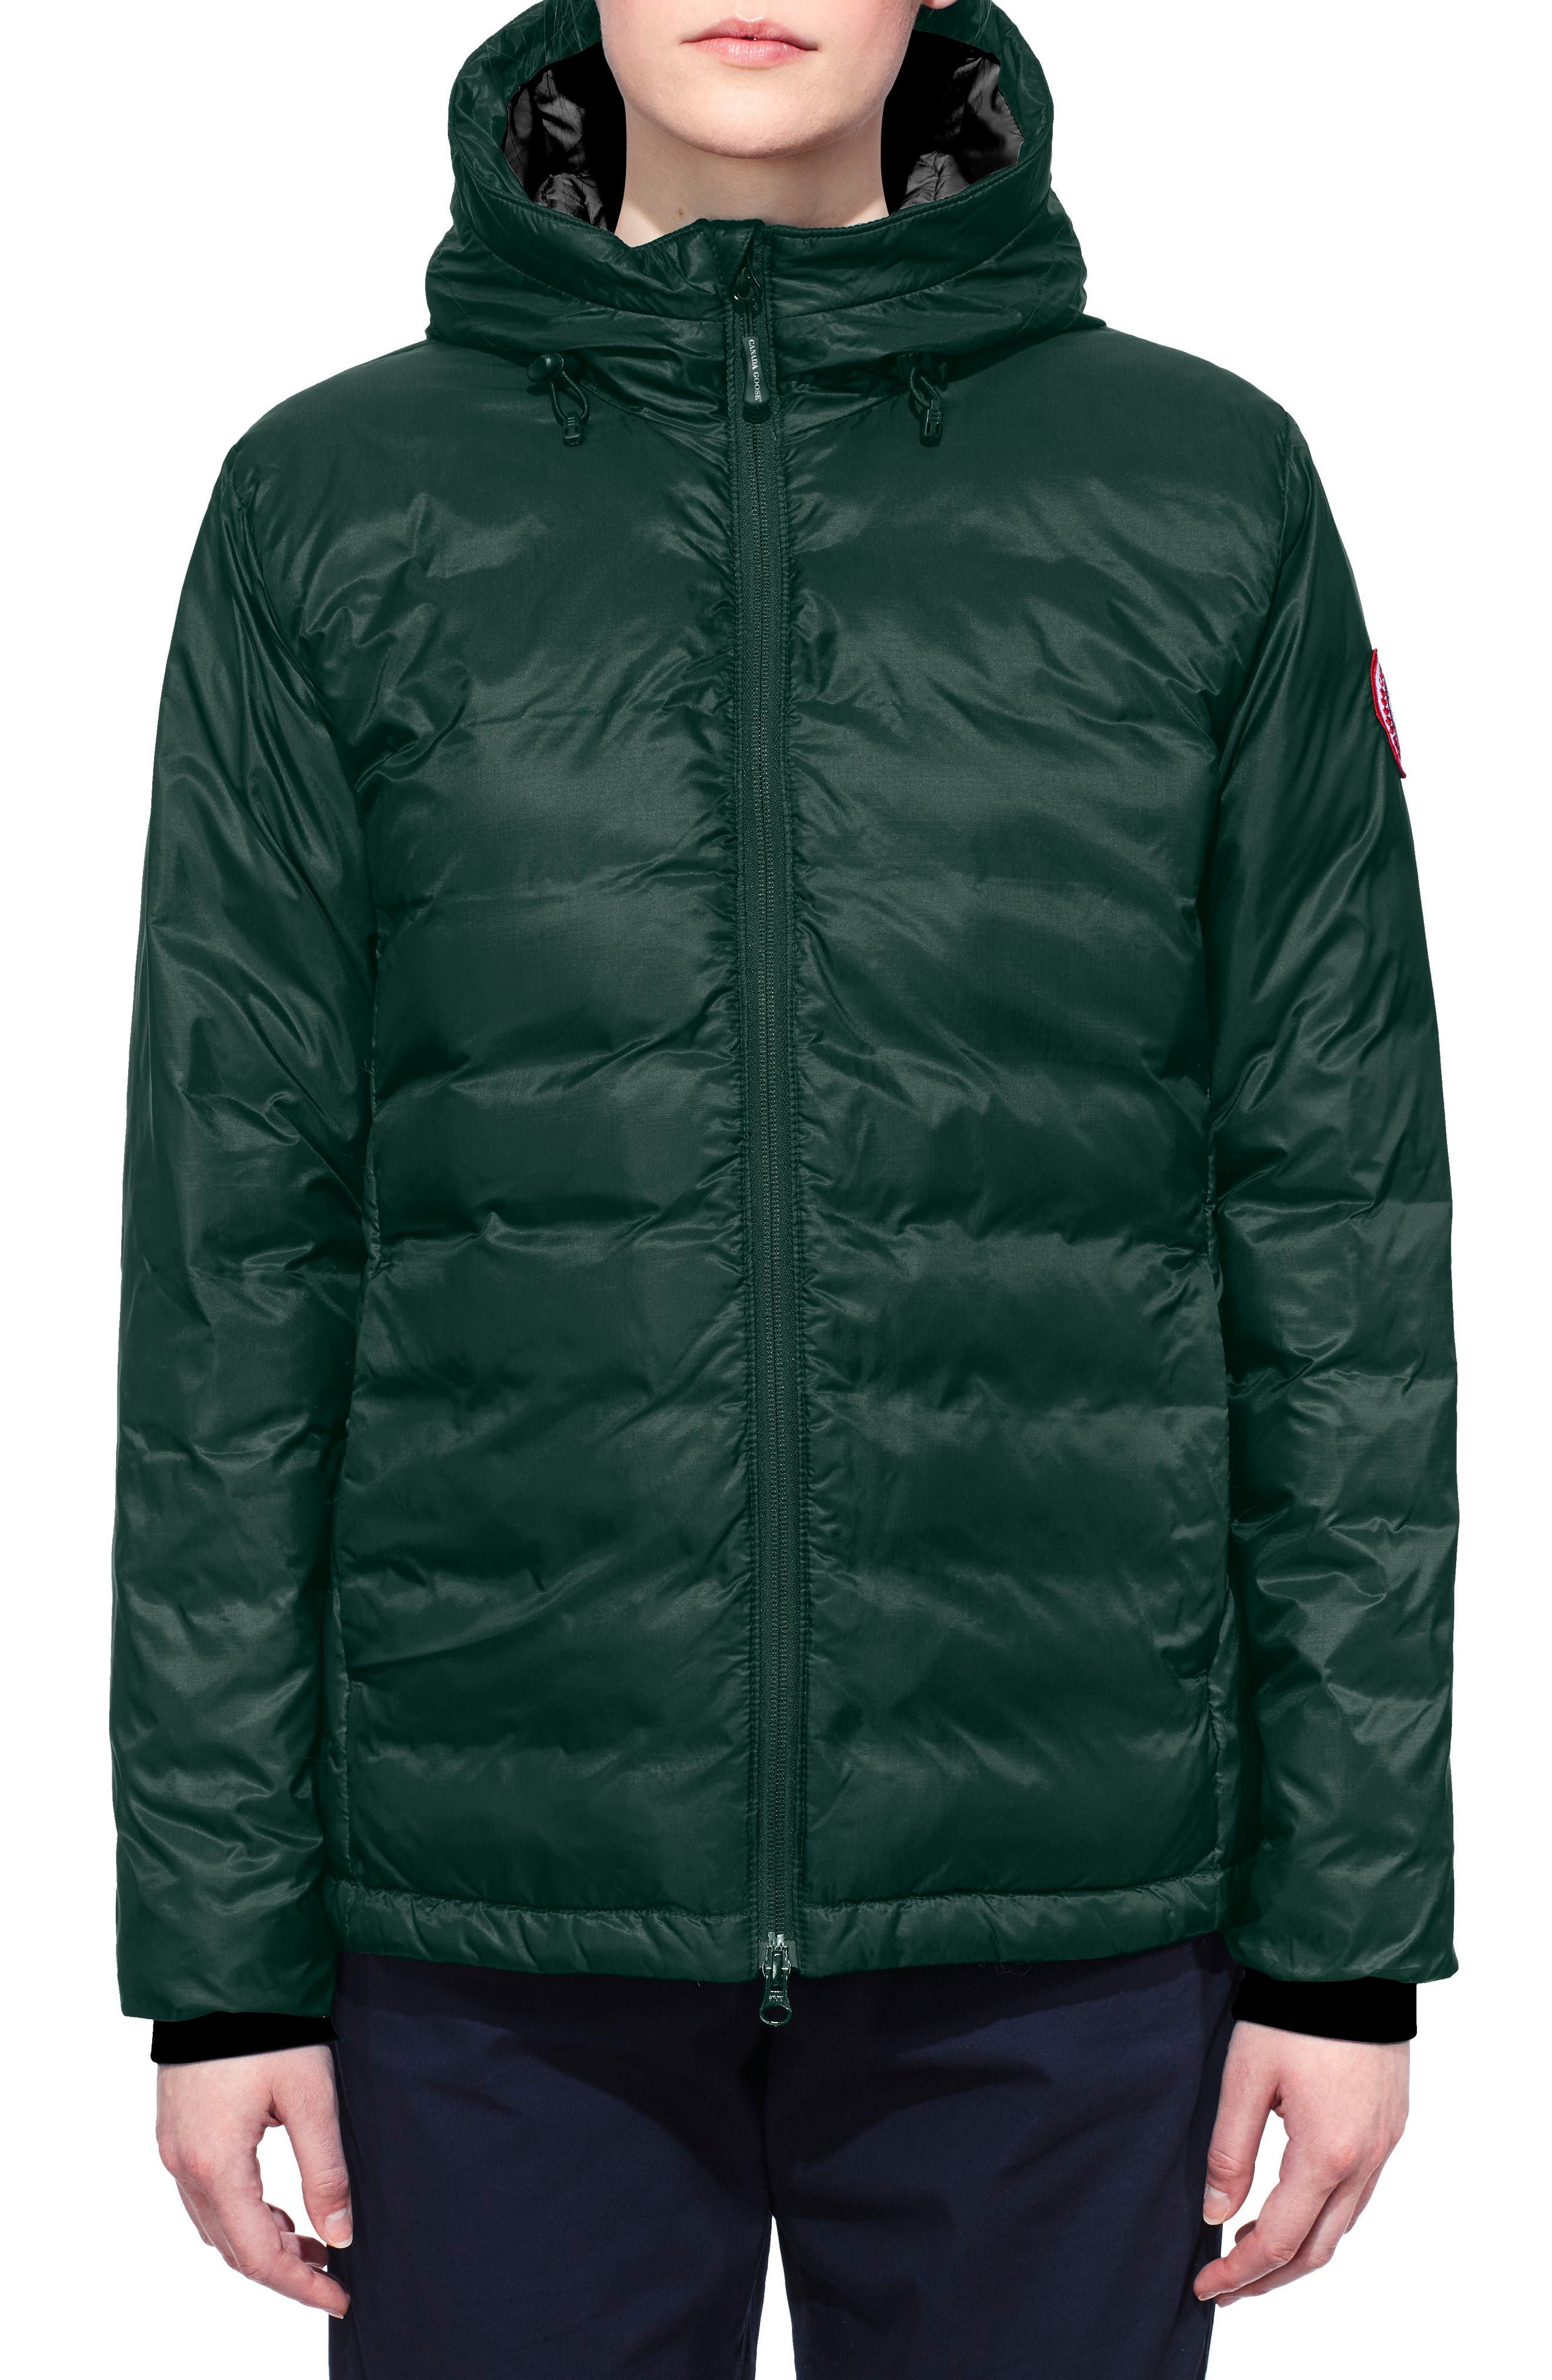 Canada Goose Camp Down Jacket, (2-4) - Green